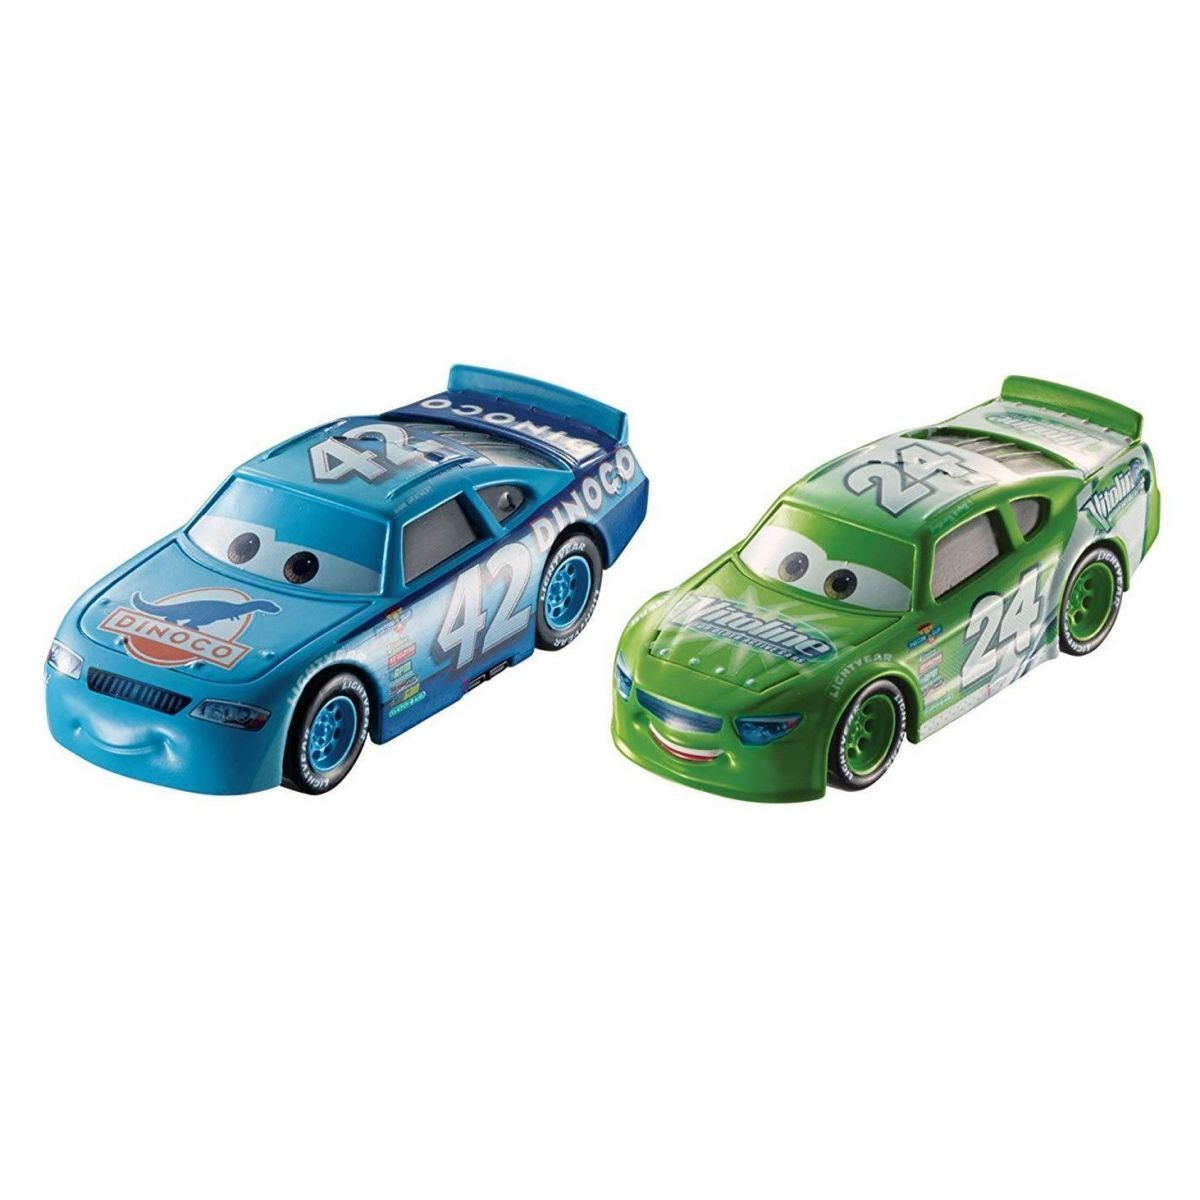 Mattel Cars 3 auta 2 ks Brick Yardley a Cal Weathers